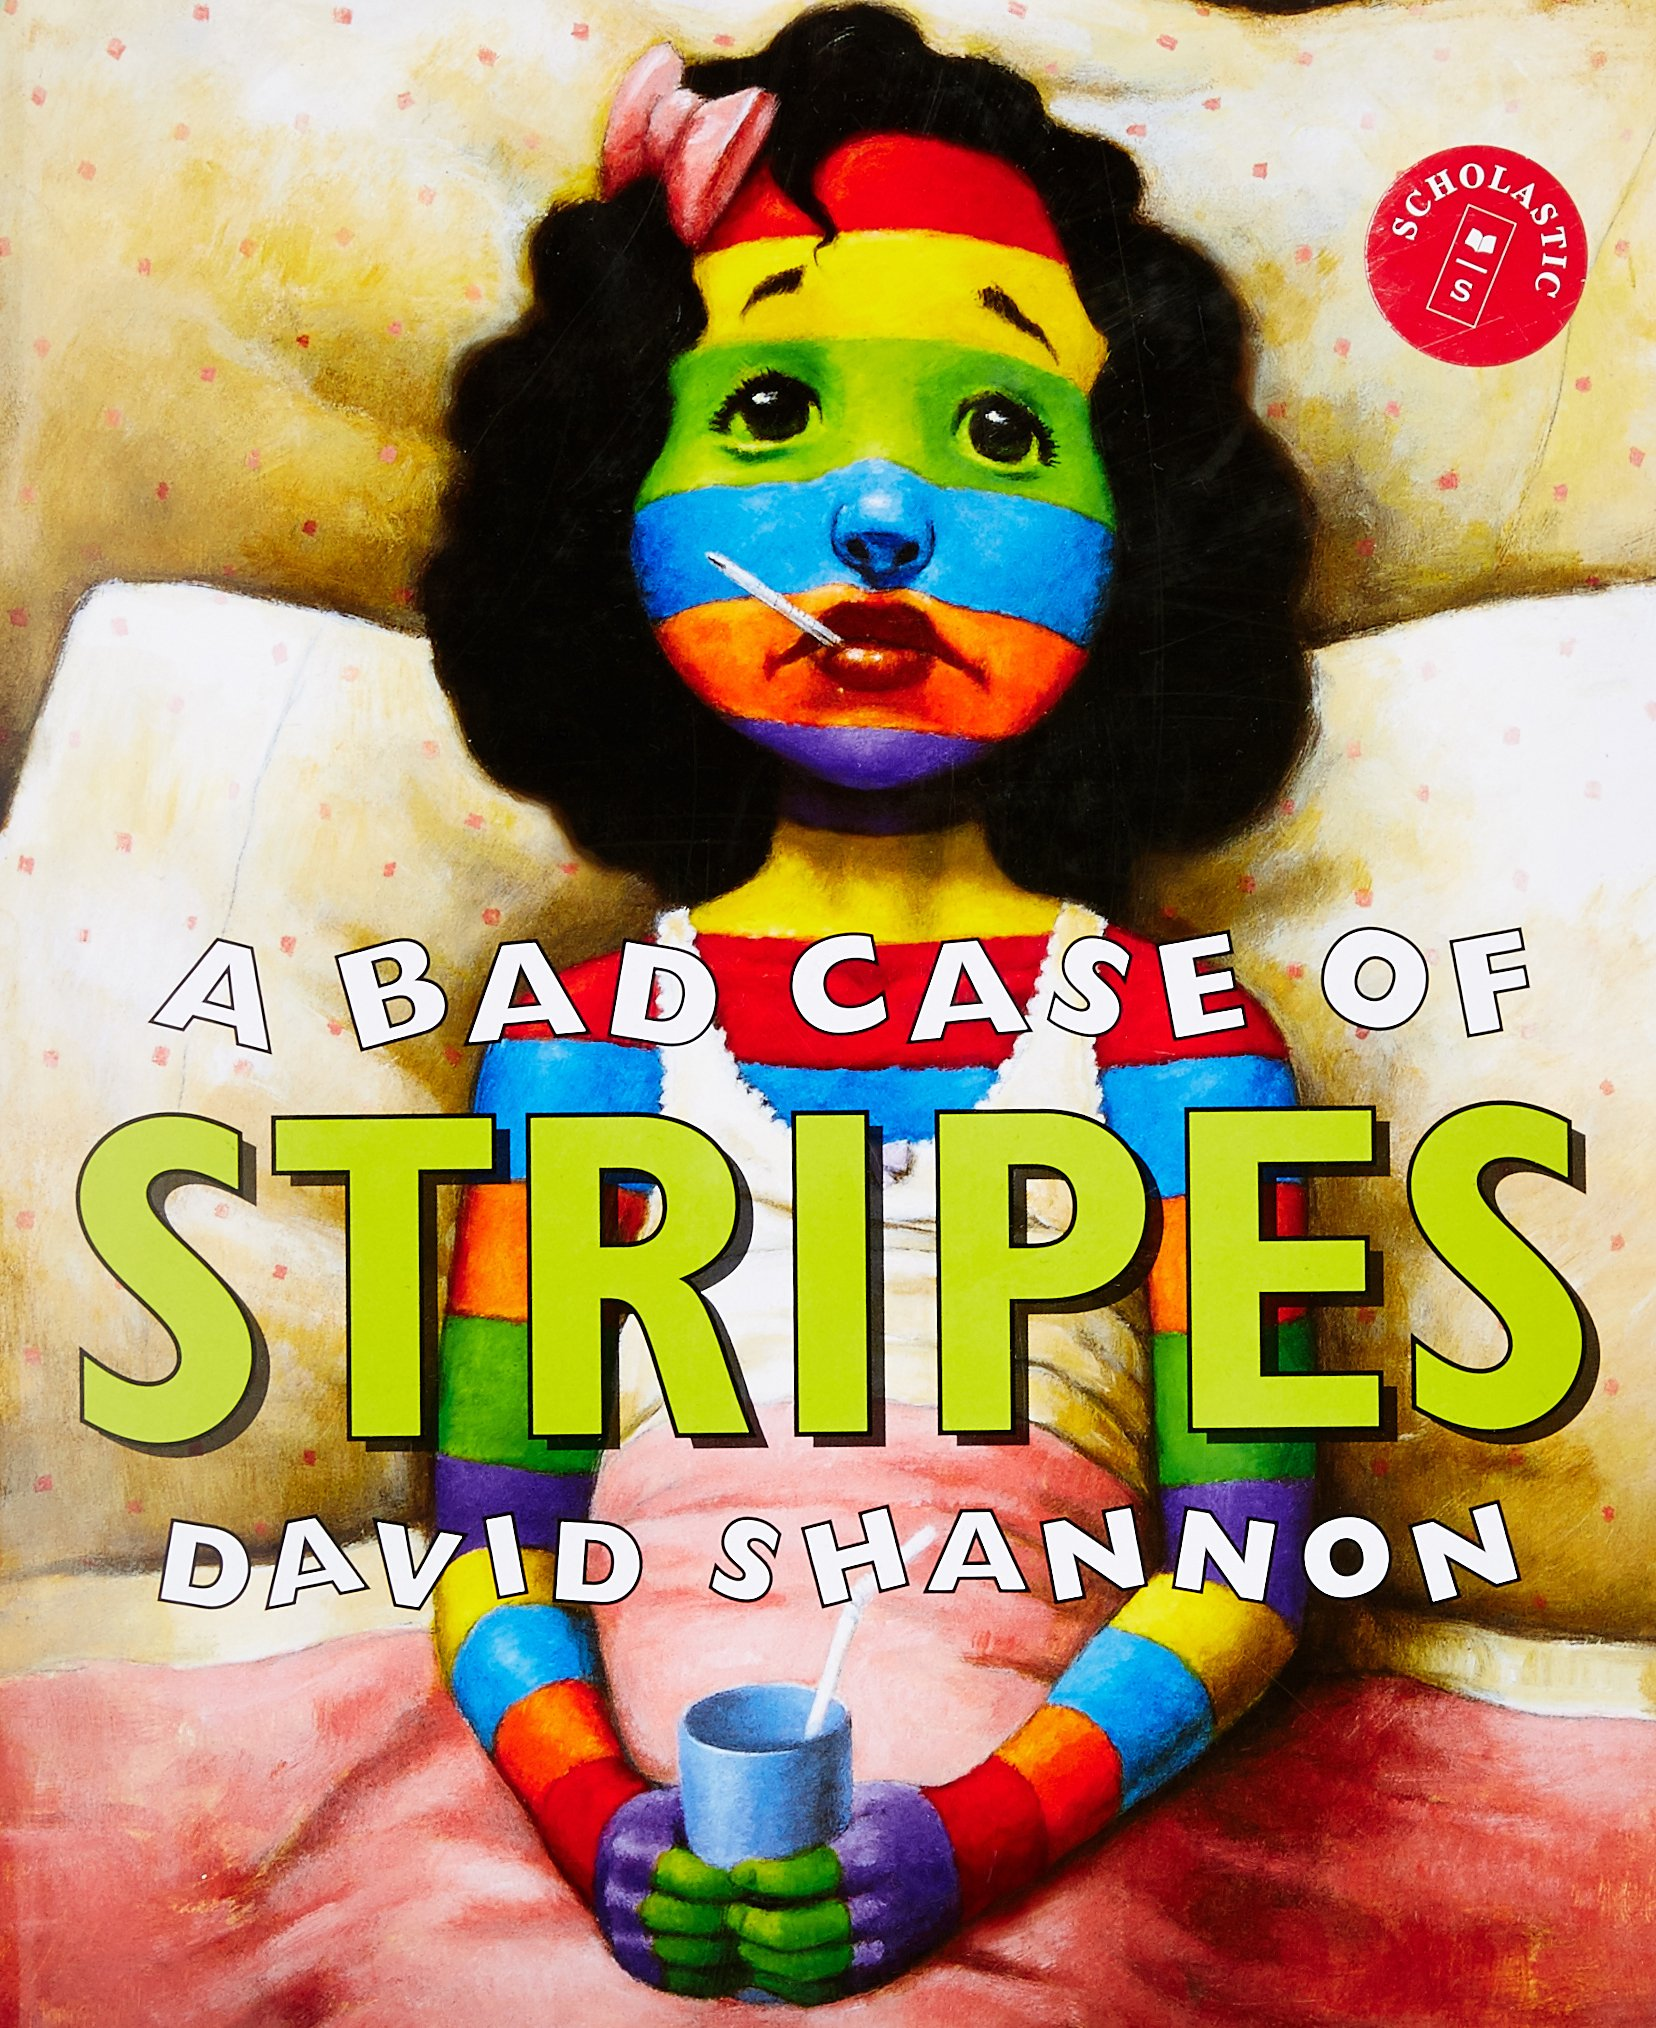 a bad case of stripes read online free